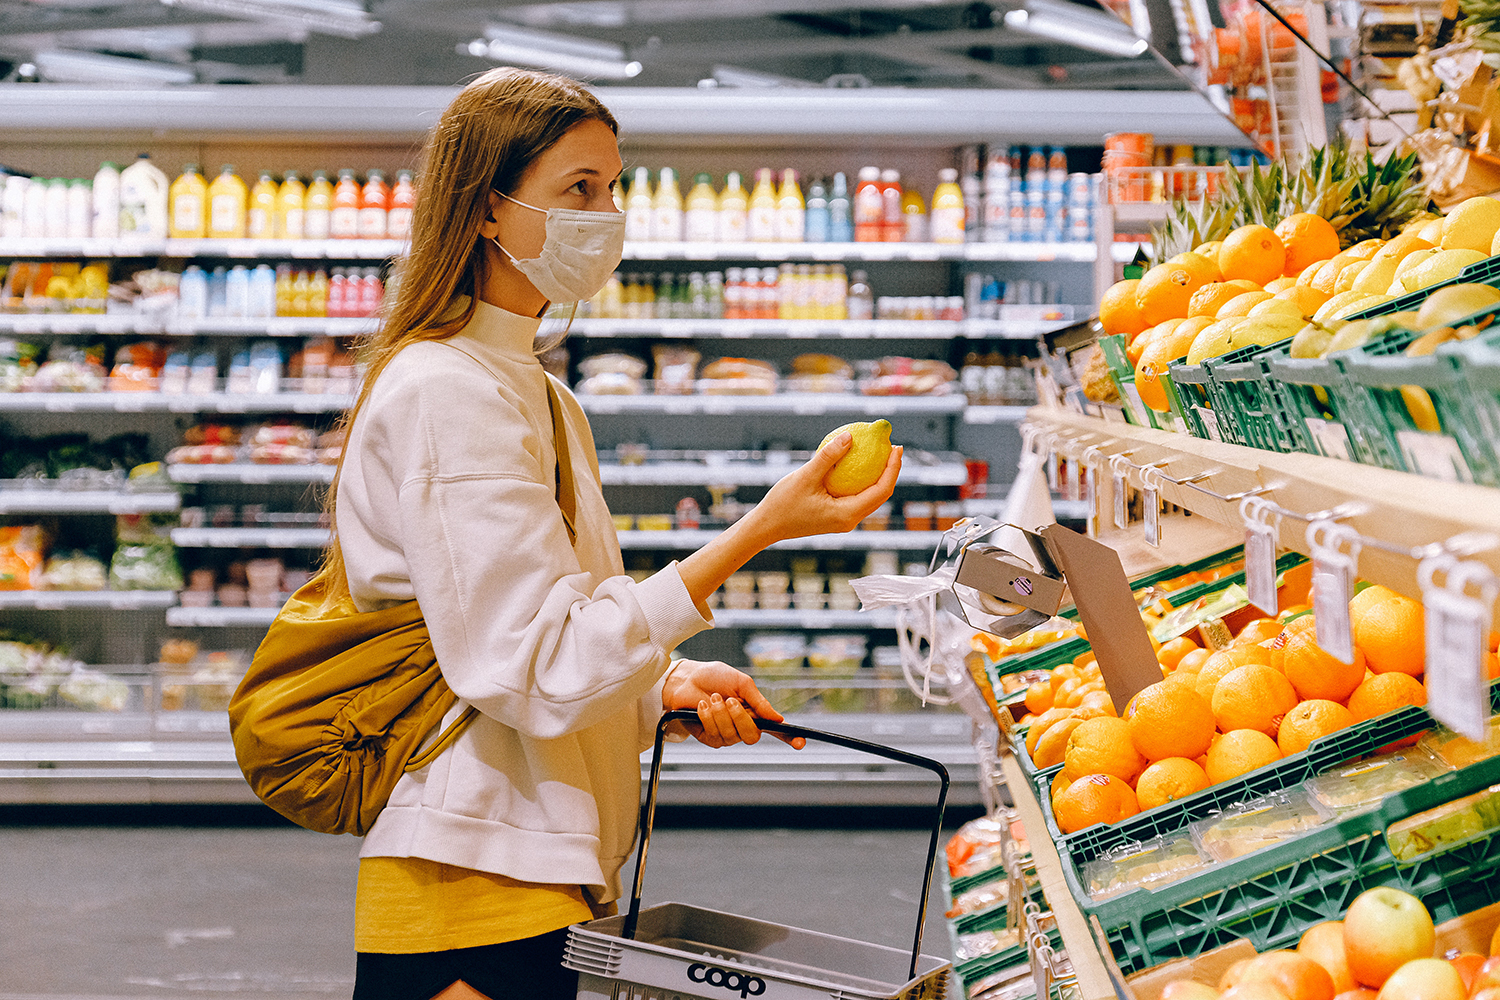 Woman wearing face mask holding a lemon at a grocery store